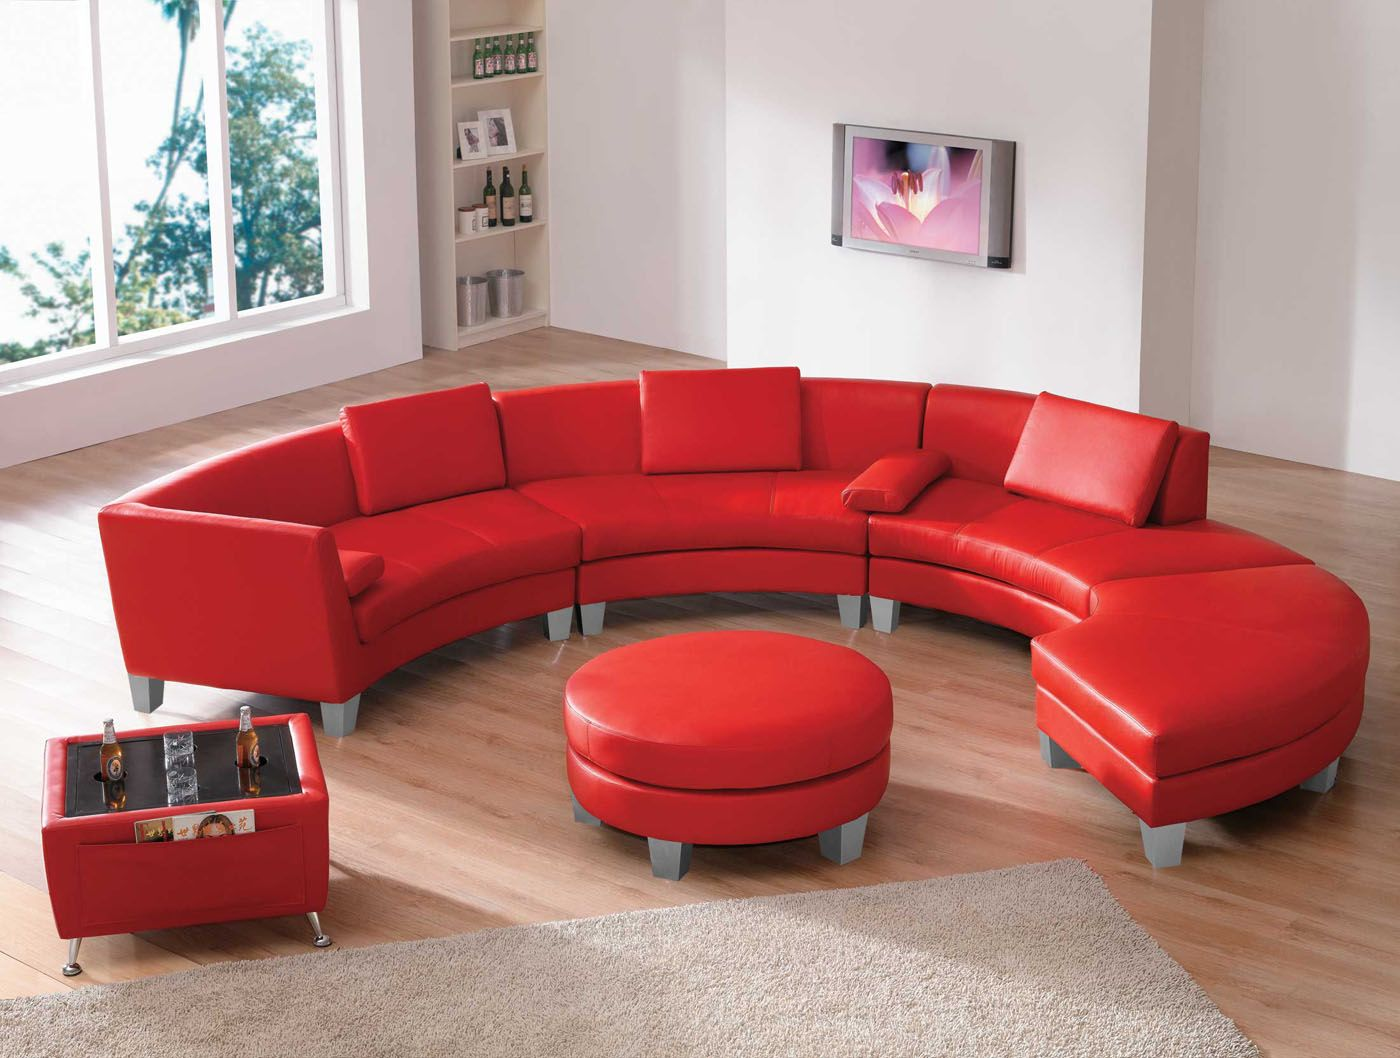 Wonderful Red Sofas Creating a Bright and Modern Interior Decoration Contemporary Sectional Sofa Design Round Table Red Sofas Finished With. : rounded corner sectional sofa - Sectionals, Sofas & Couches